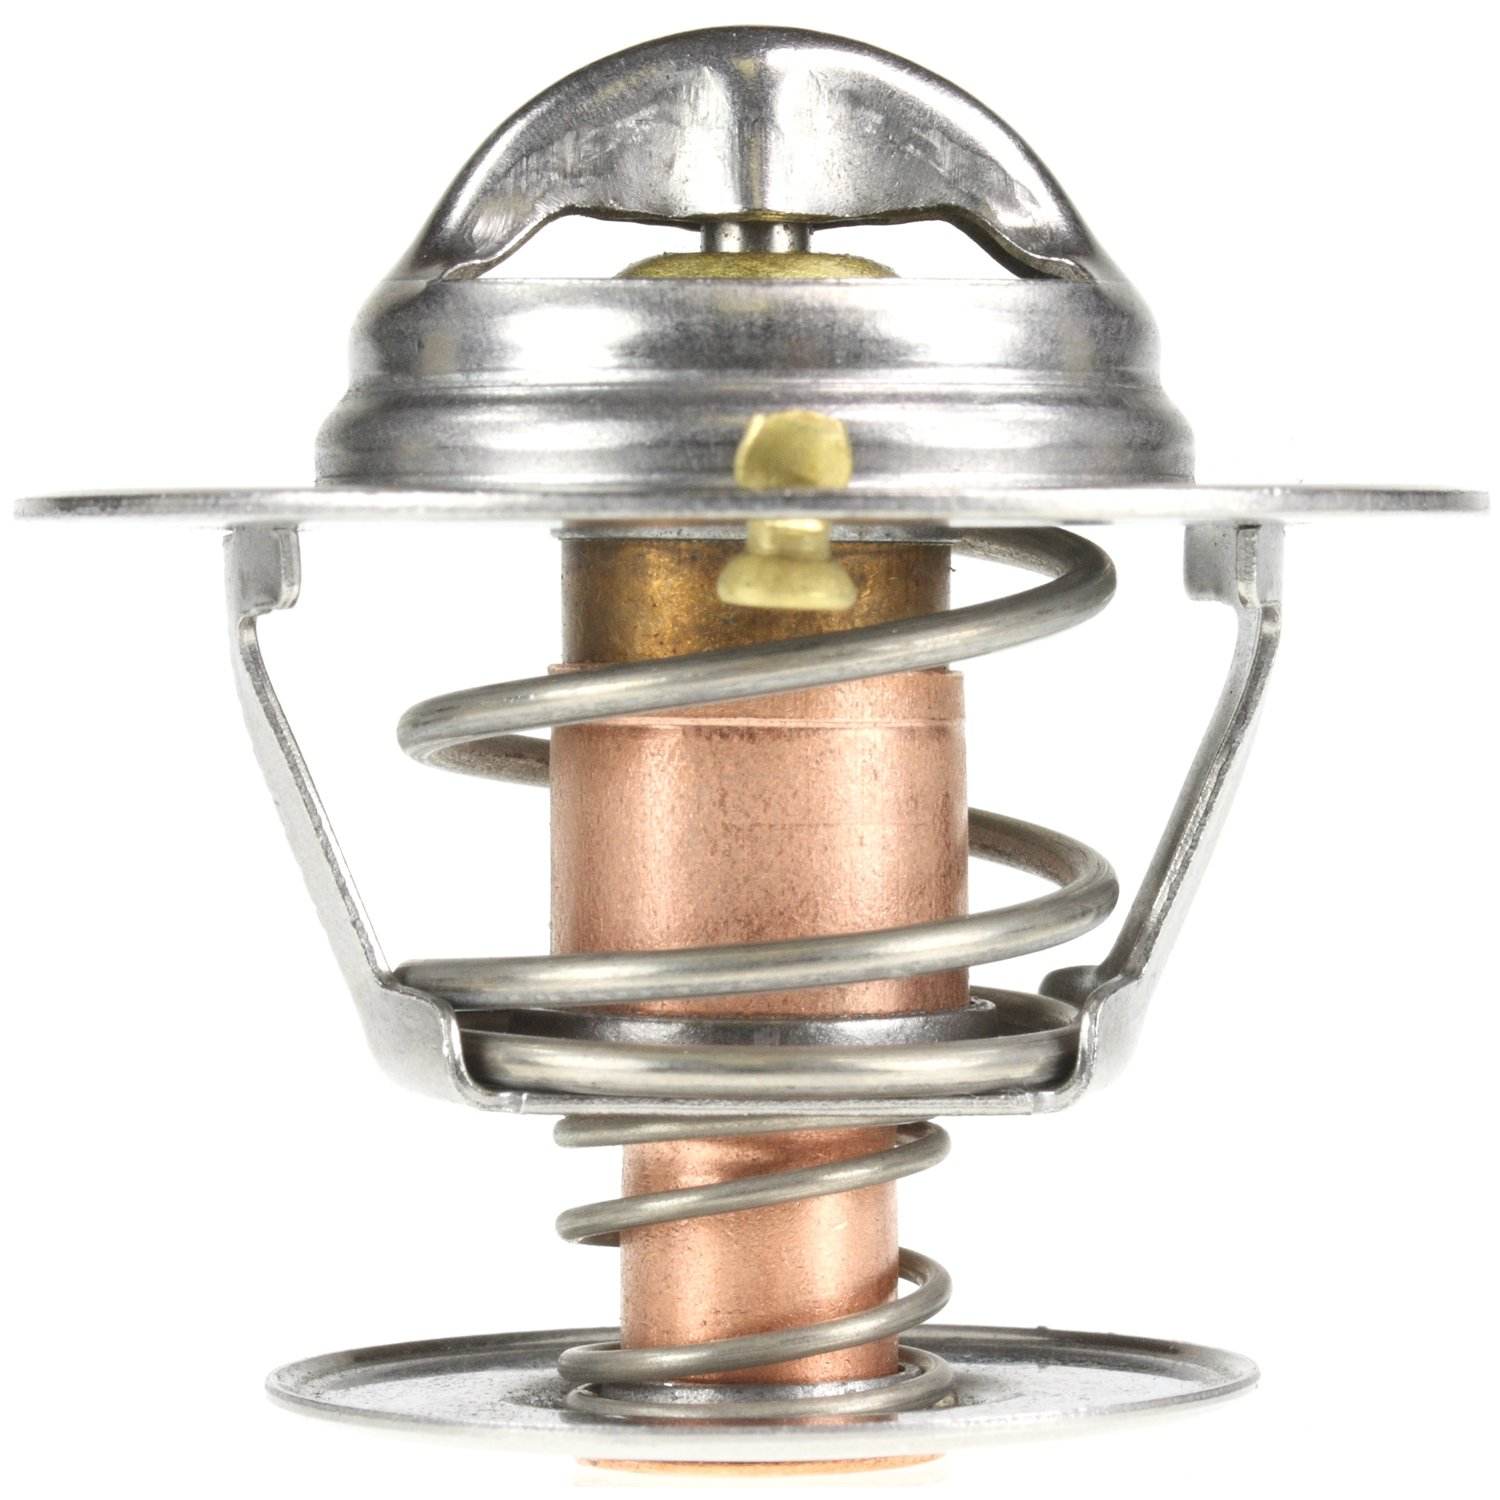 Motorad 270-195 Thermostat